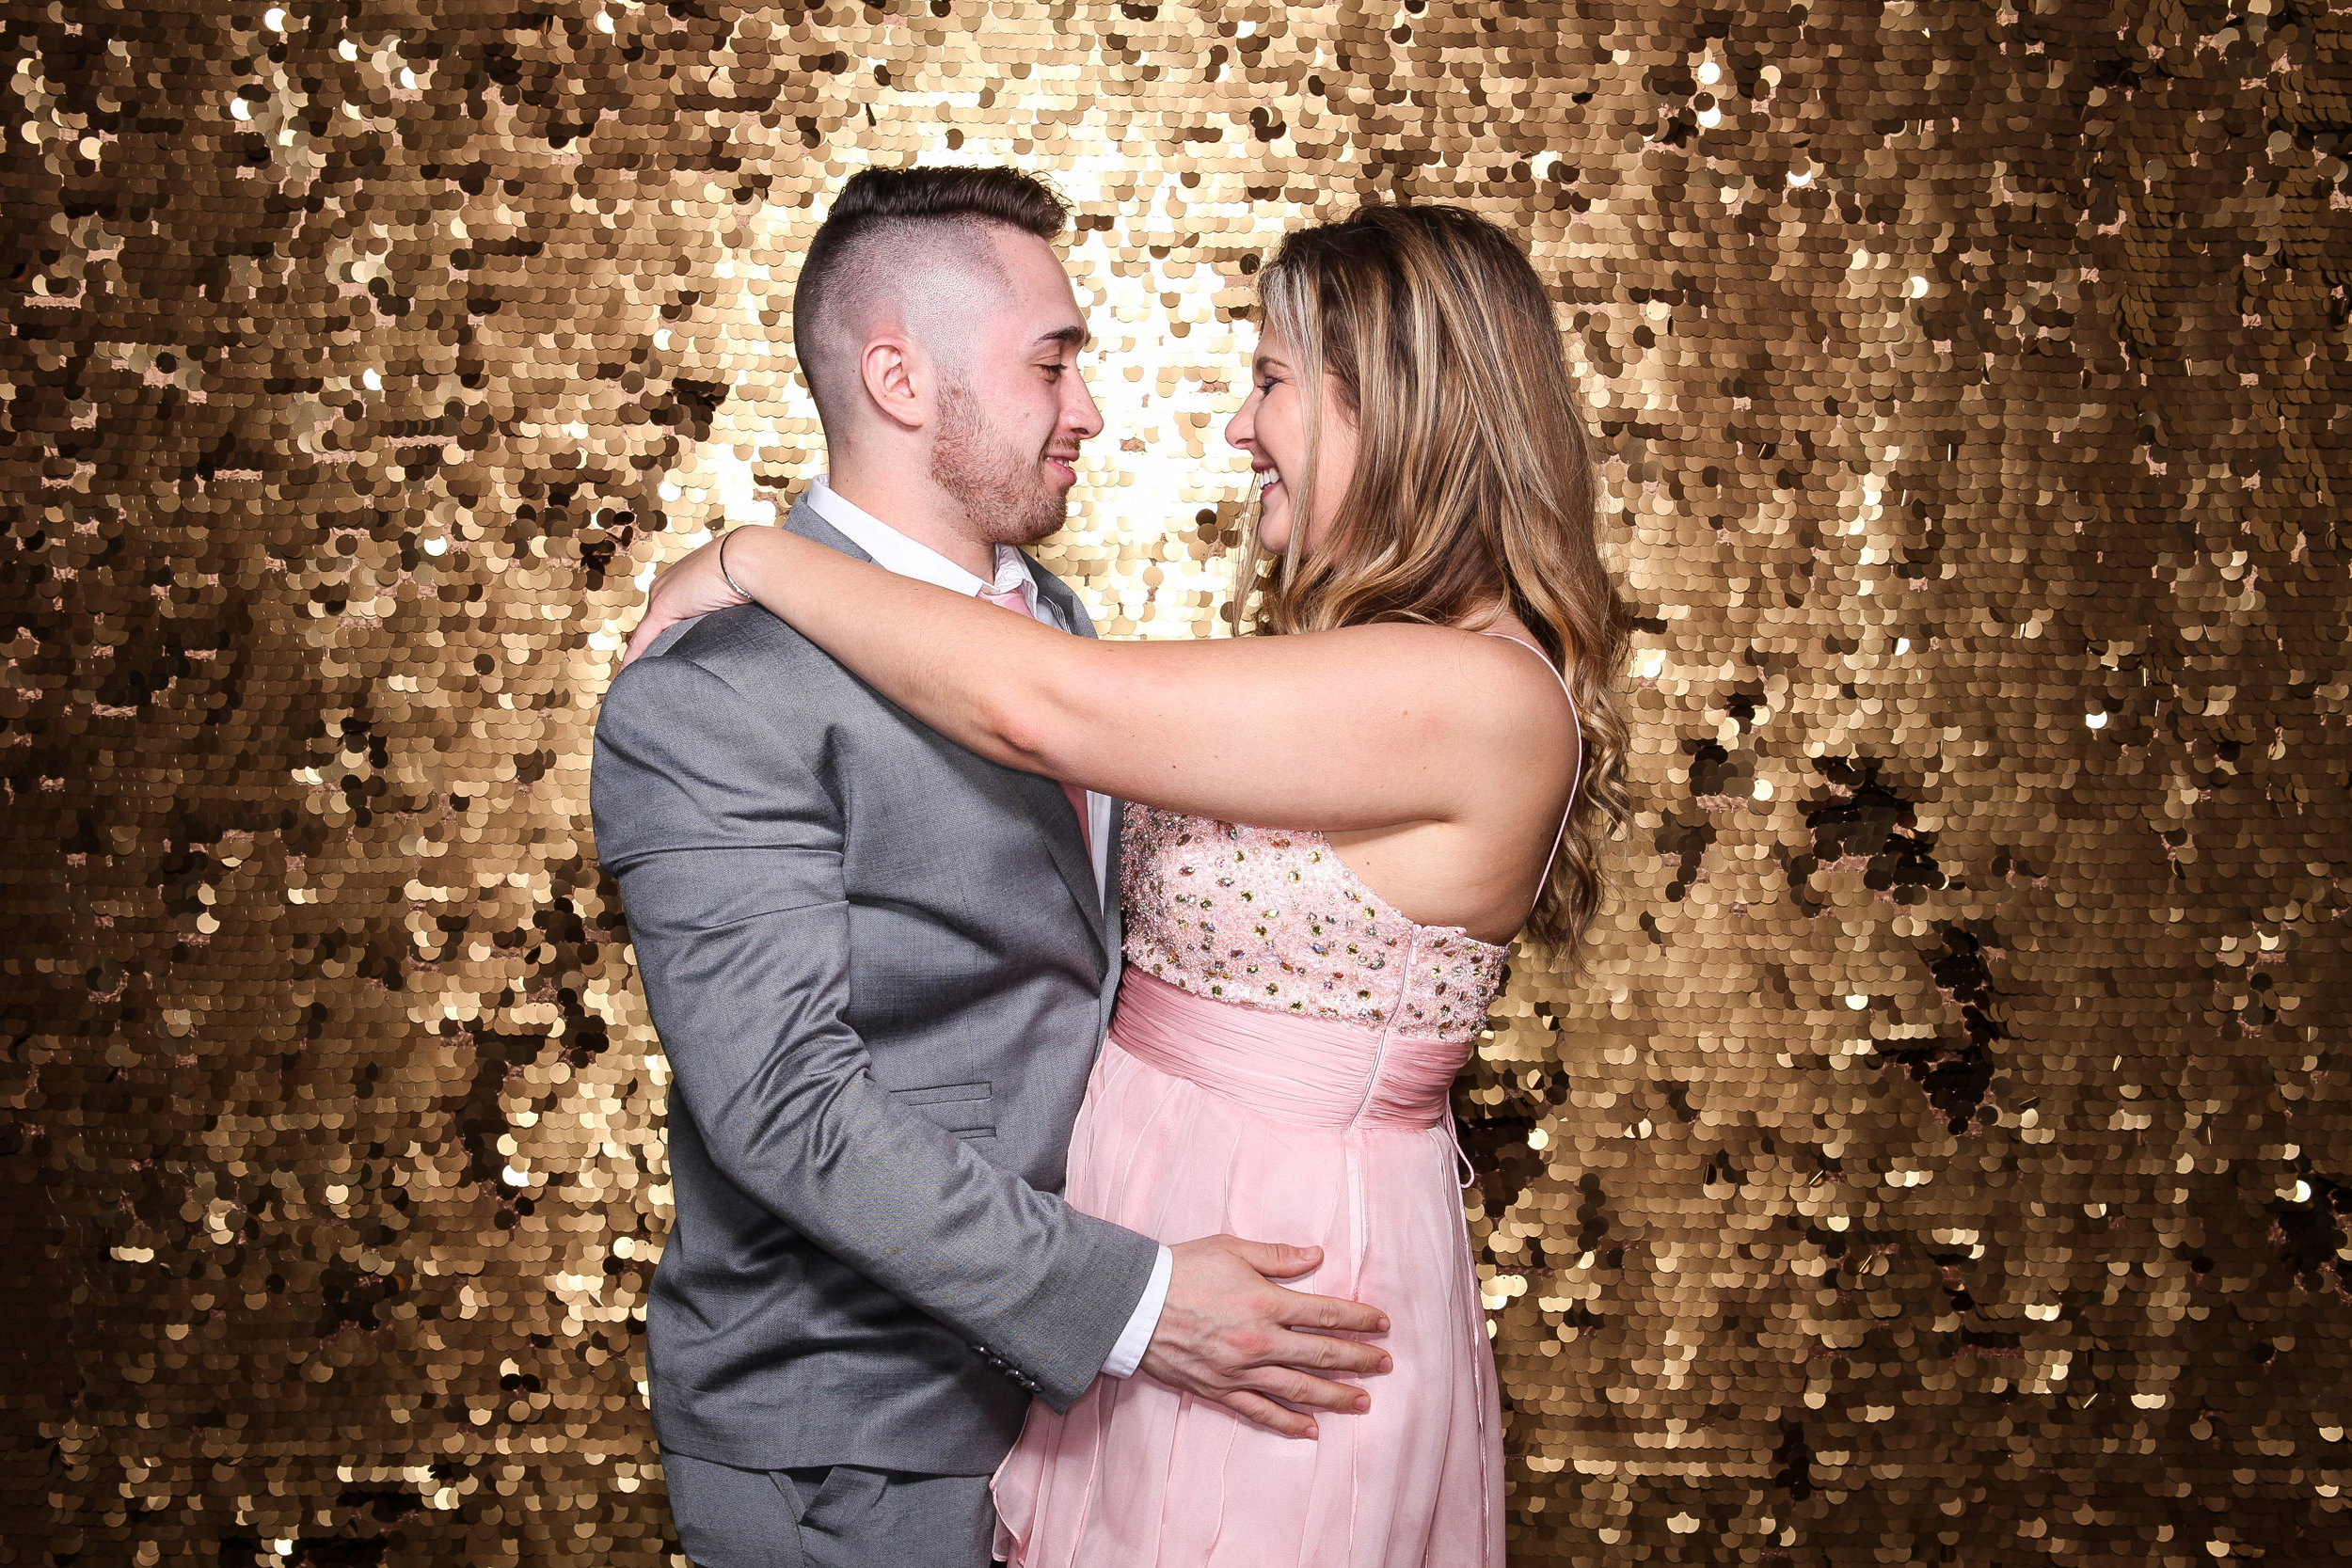 20190503_Adelphi_Senior_Formal-323.jpg